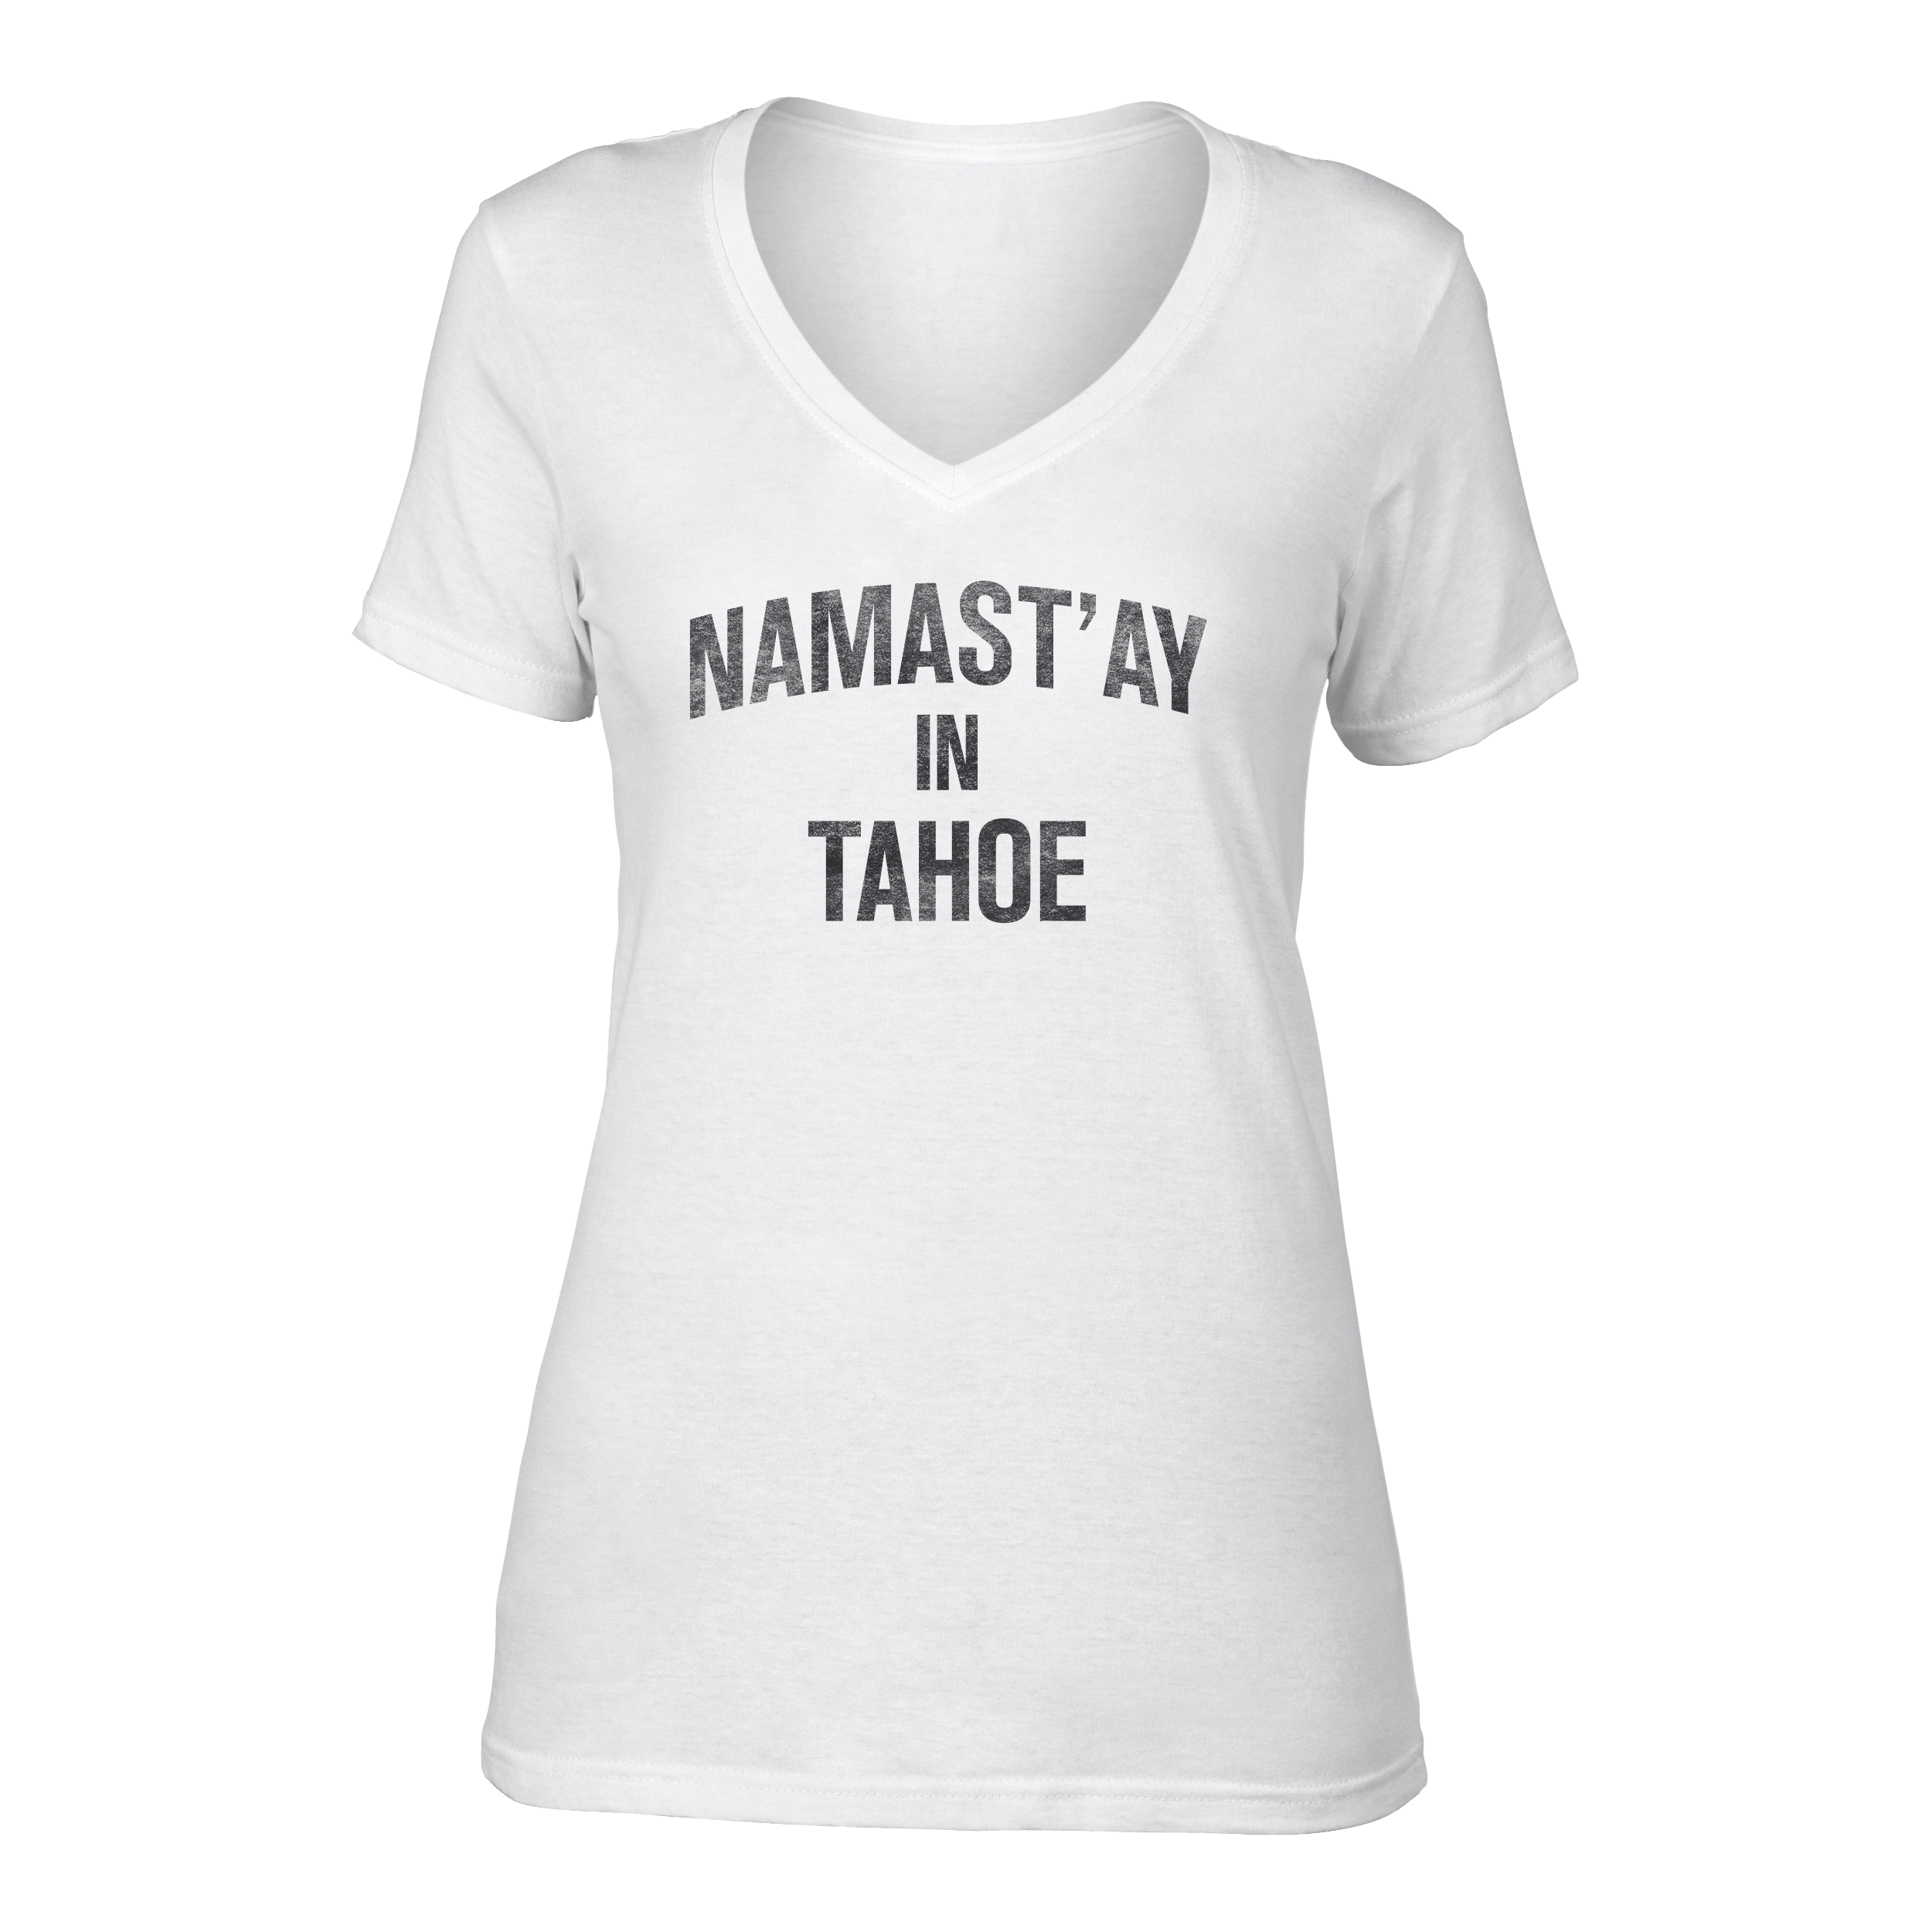 W's Namast'ay in Tahoe Hemp Blend V Neck